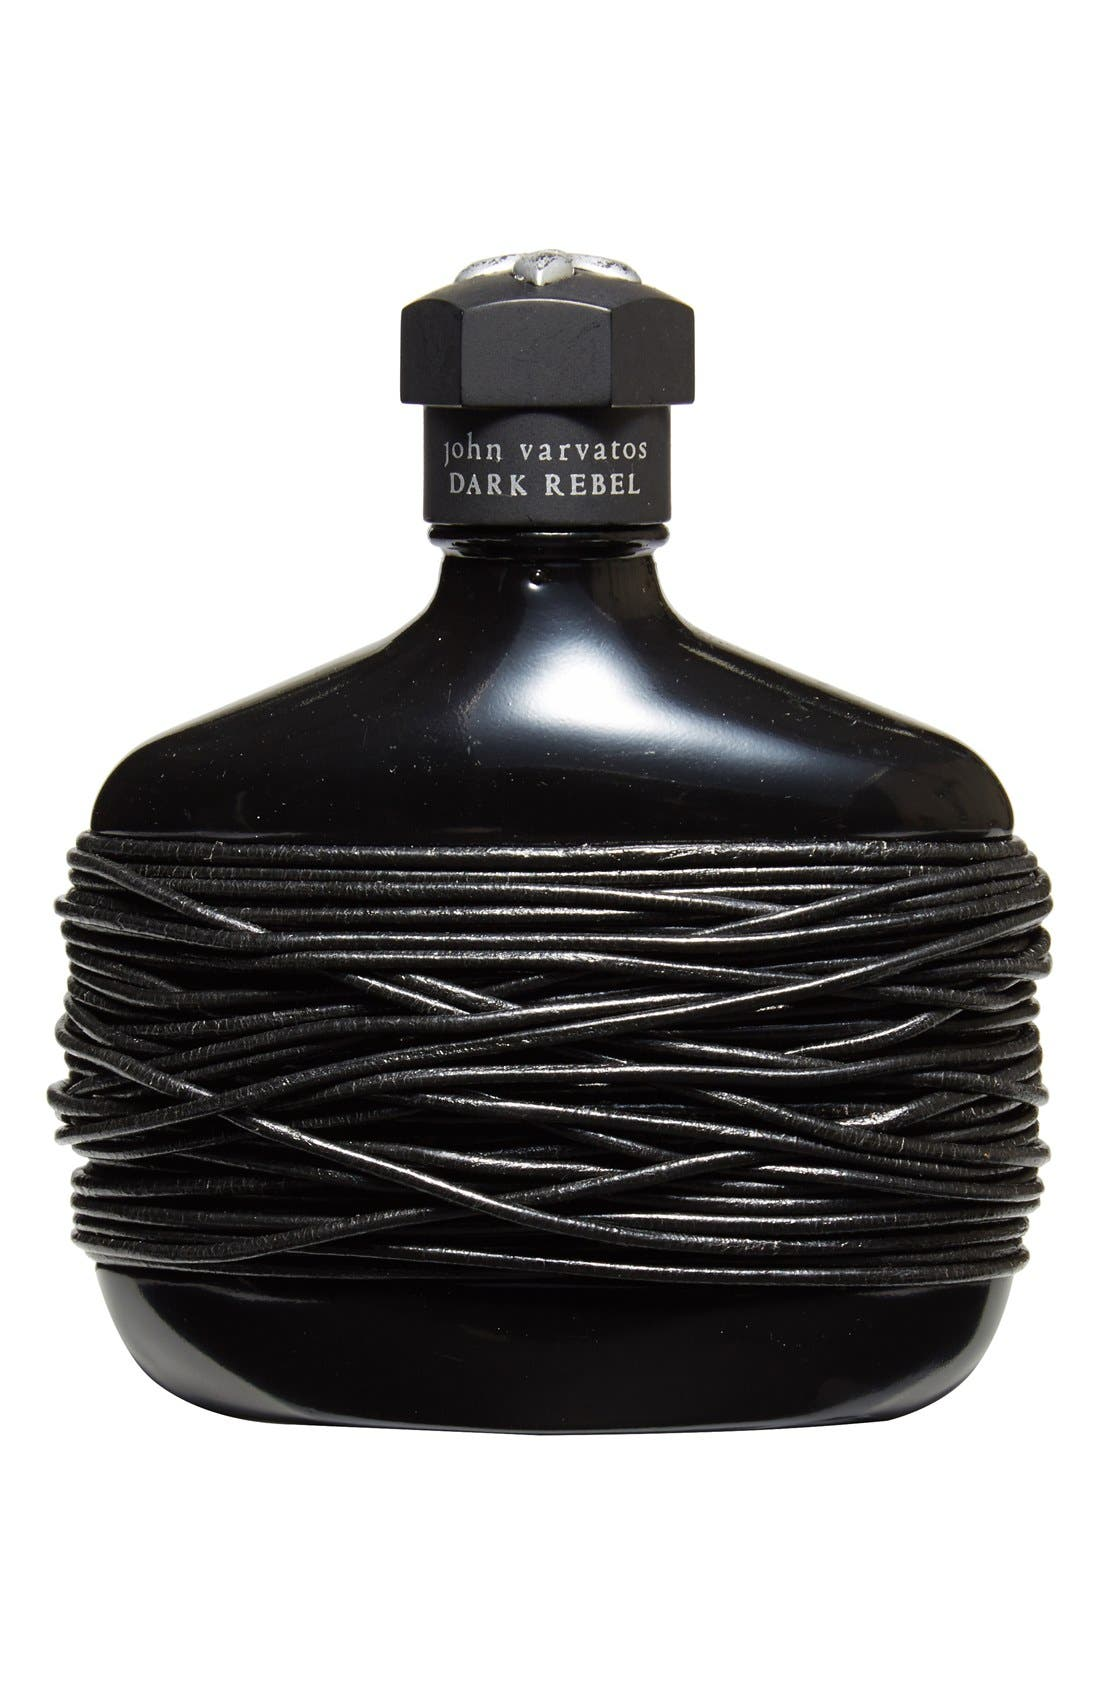 John Varvatos 'Dark Rebel' Eau de Toilette